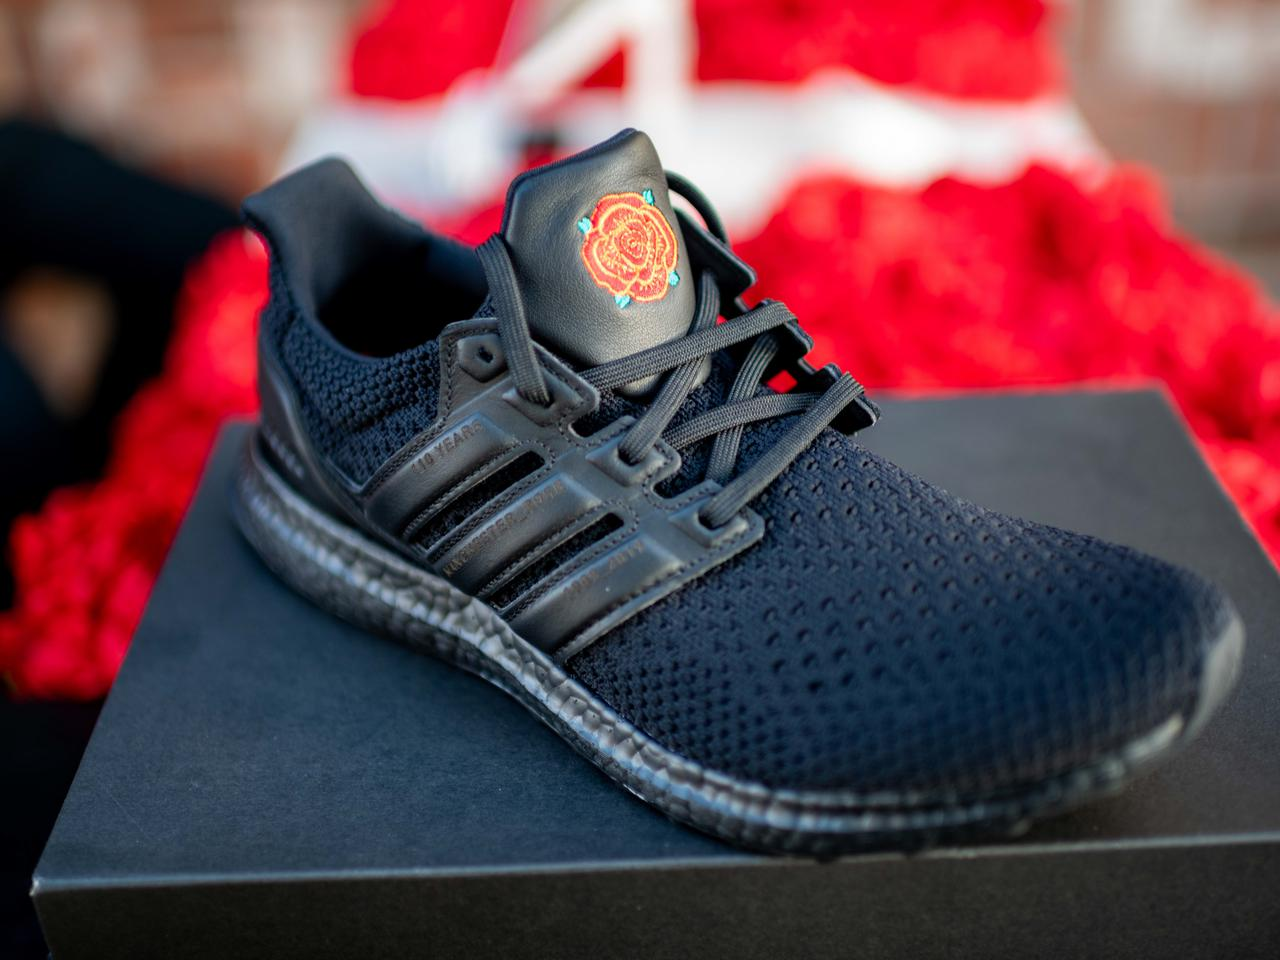 Adidas Man United Ultra Boost Roses Trainers Launch In Los Angeles With Legends Manchester United